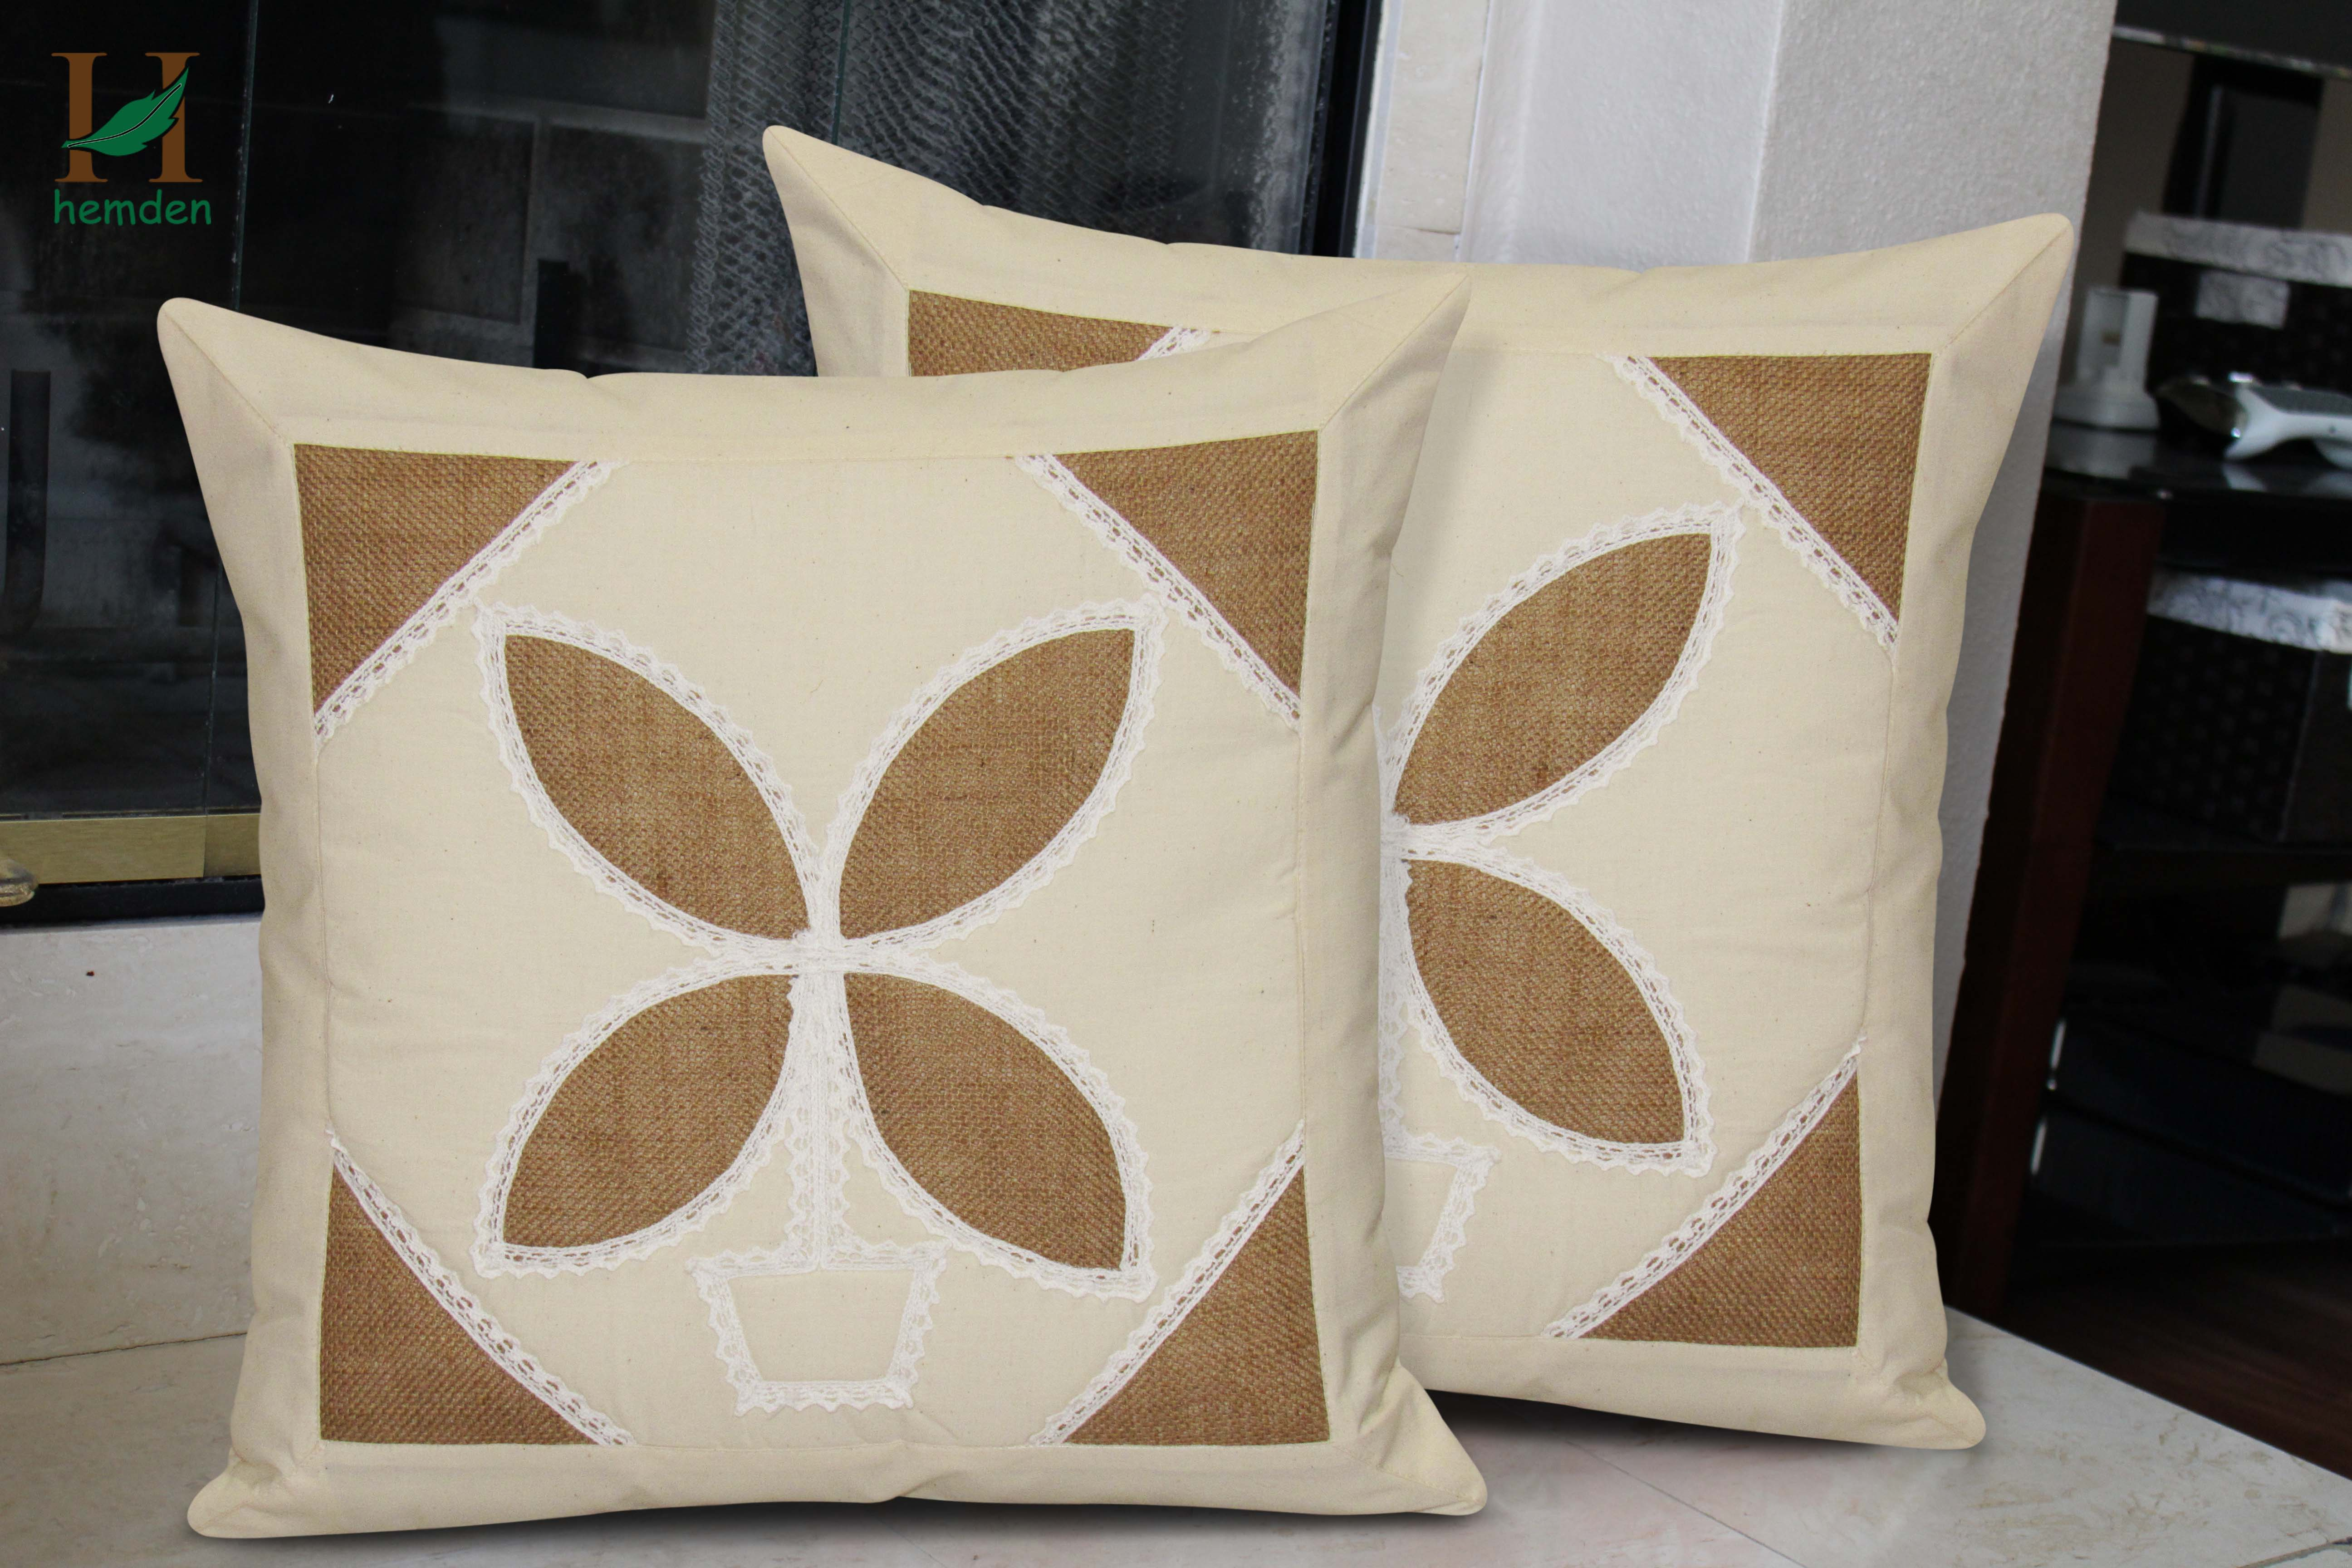 Hemden Floral Cushions Cover Pack of 2, 40 cm40 cm, White, Grey